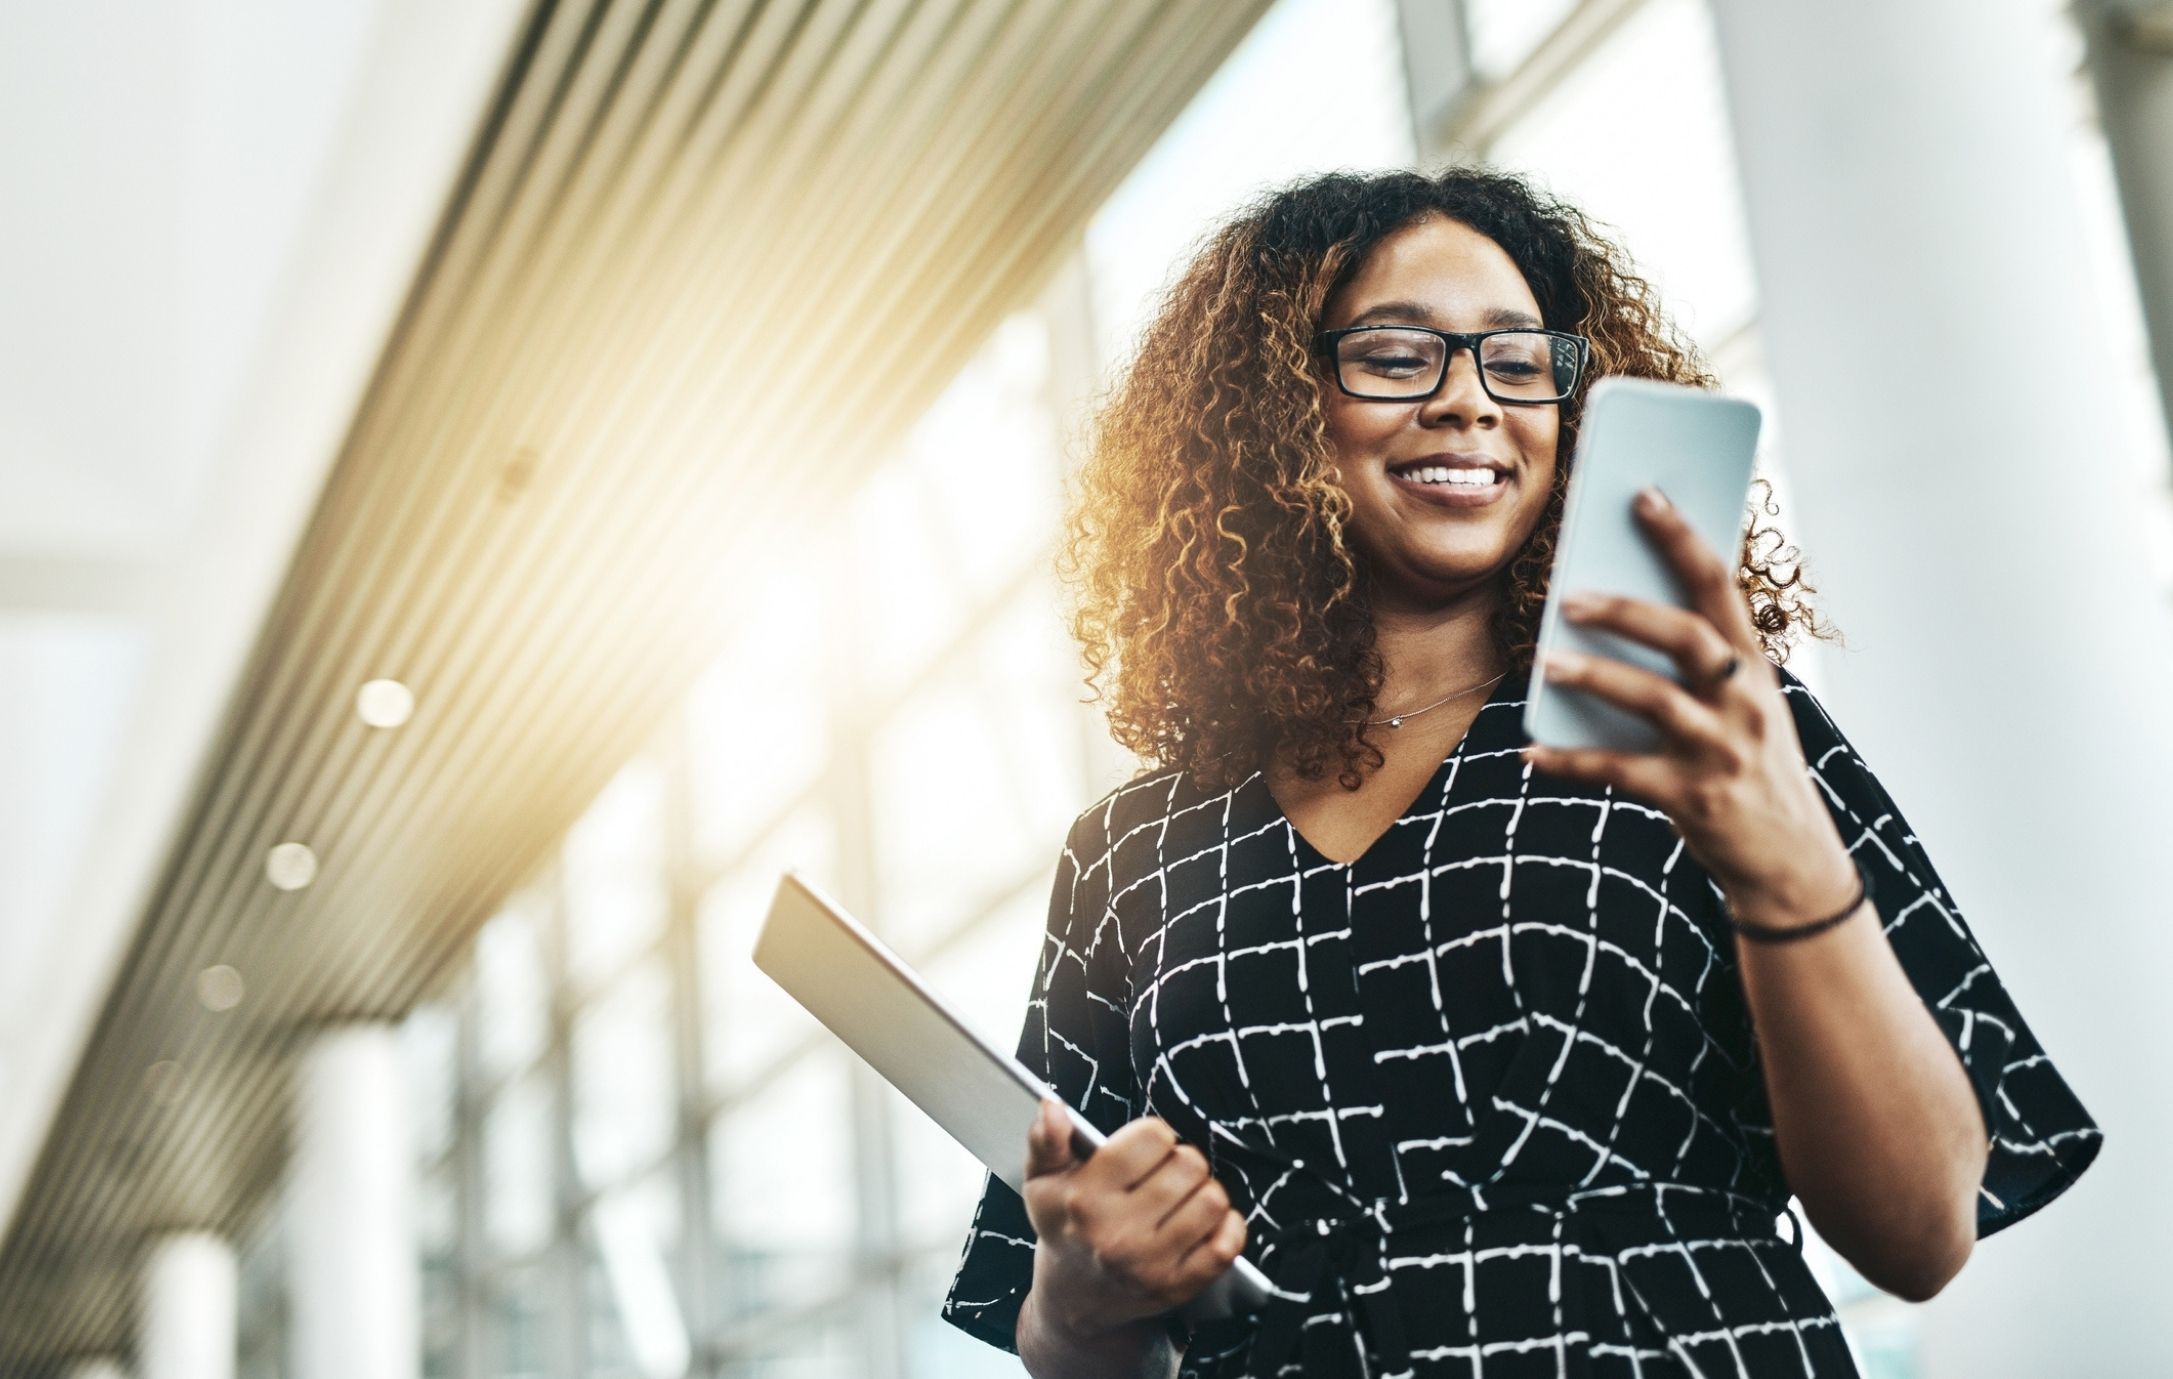 Woman smiling at phone carrying tablet